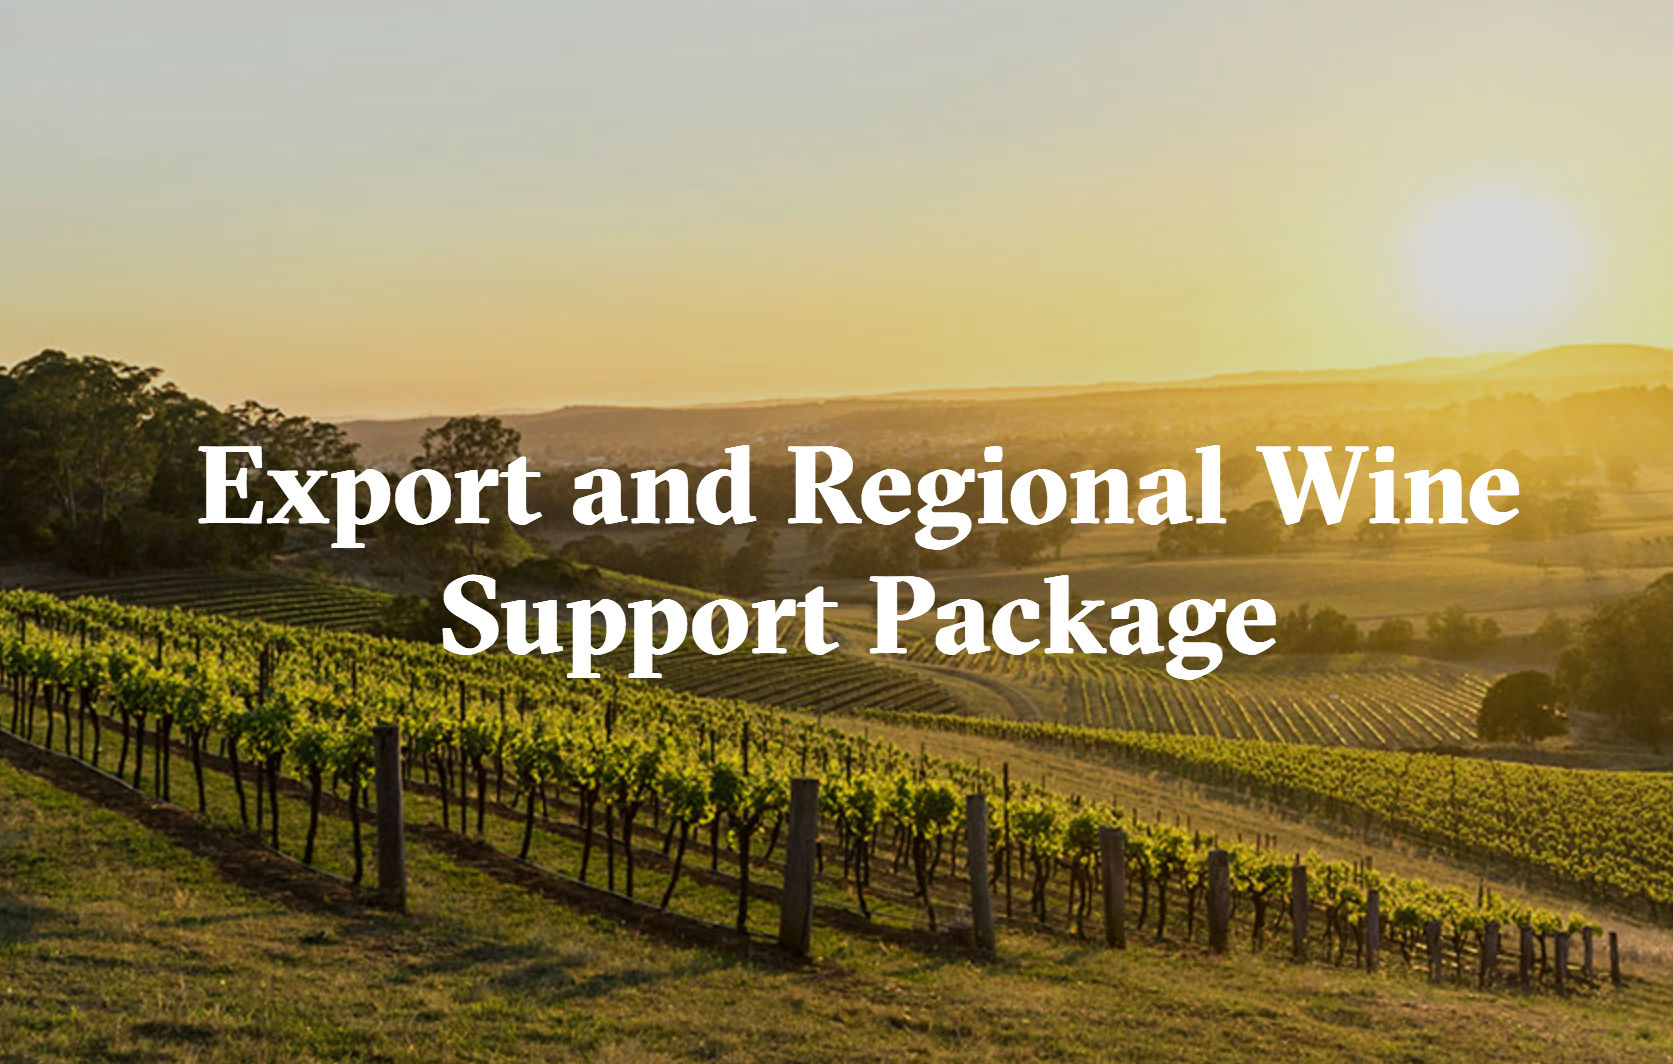 wine tourism Wine regions are attracting increasing numbers of tourists through tours, wine festivals and events, and winery, restaurant and cellar door experiences using a host.